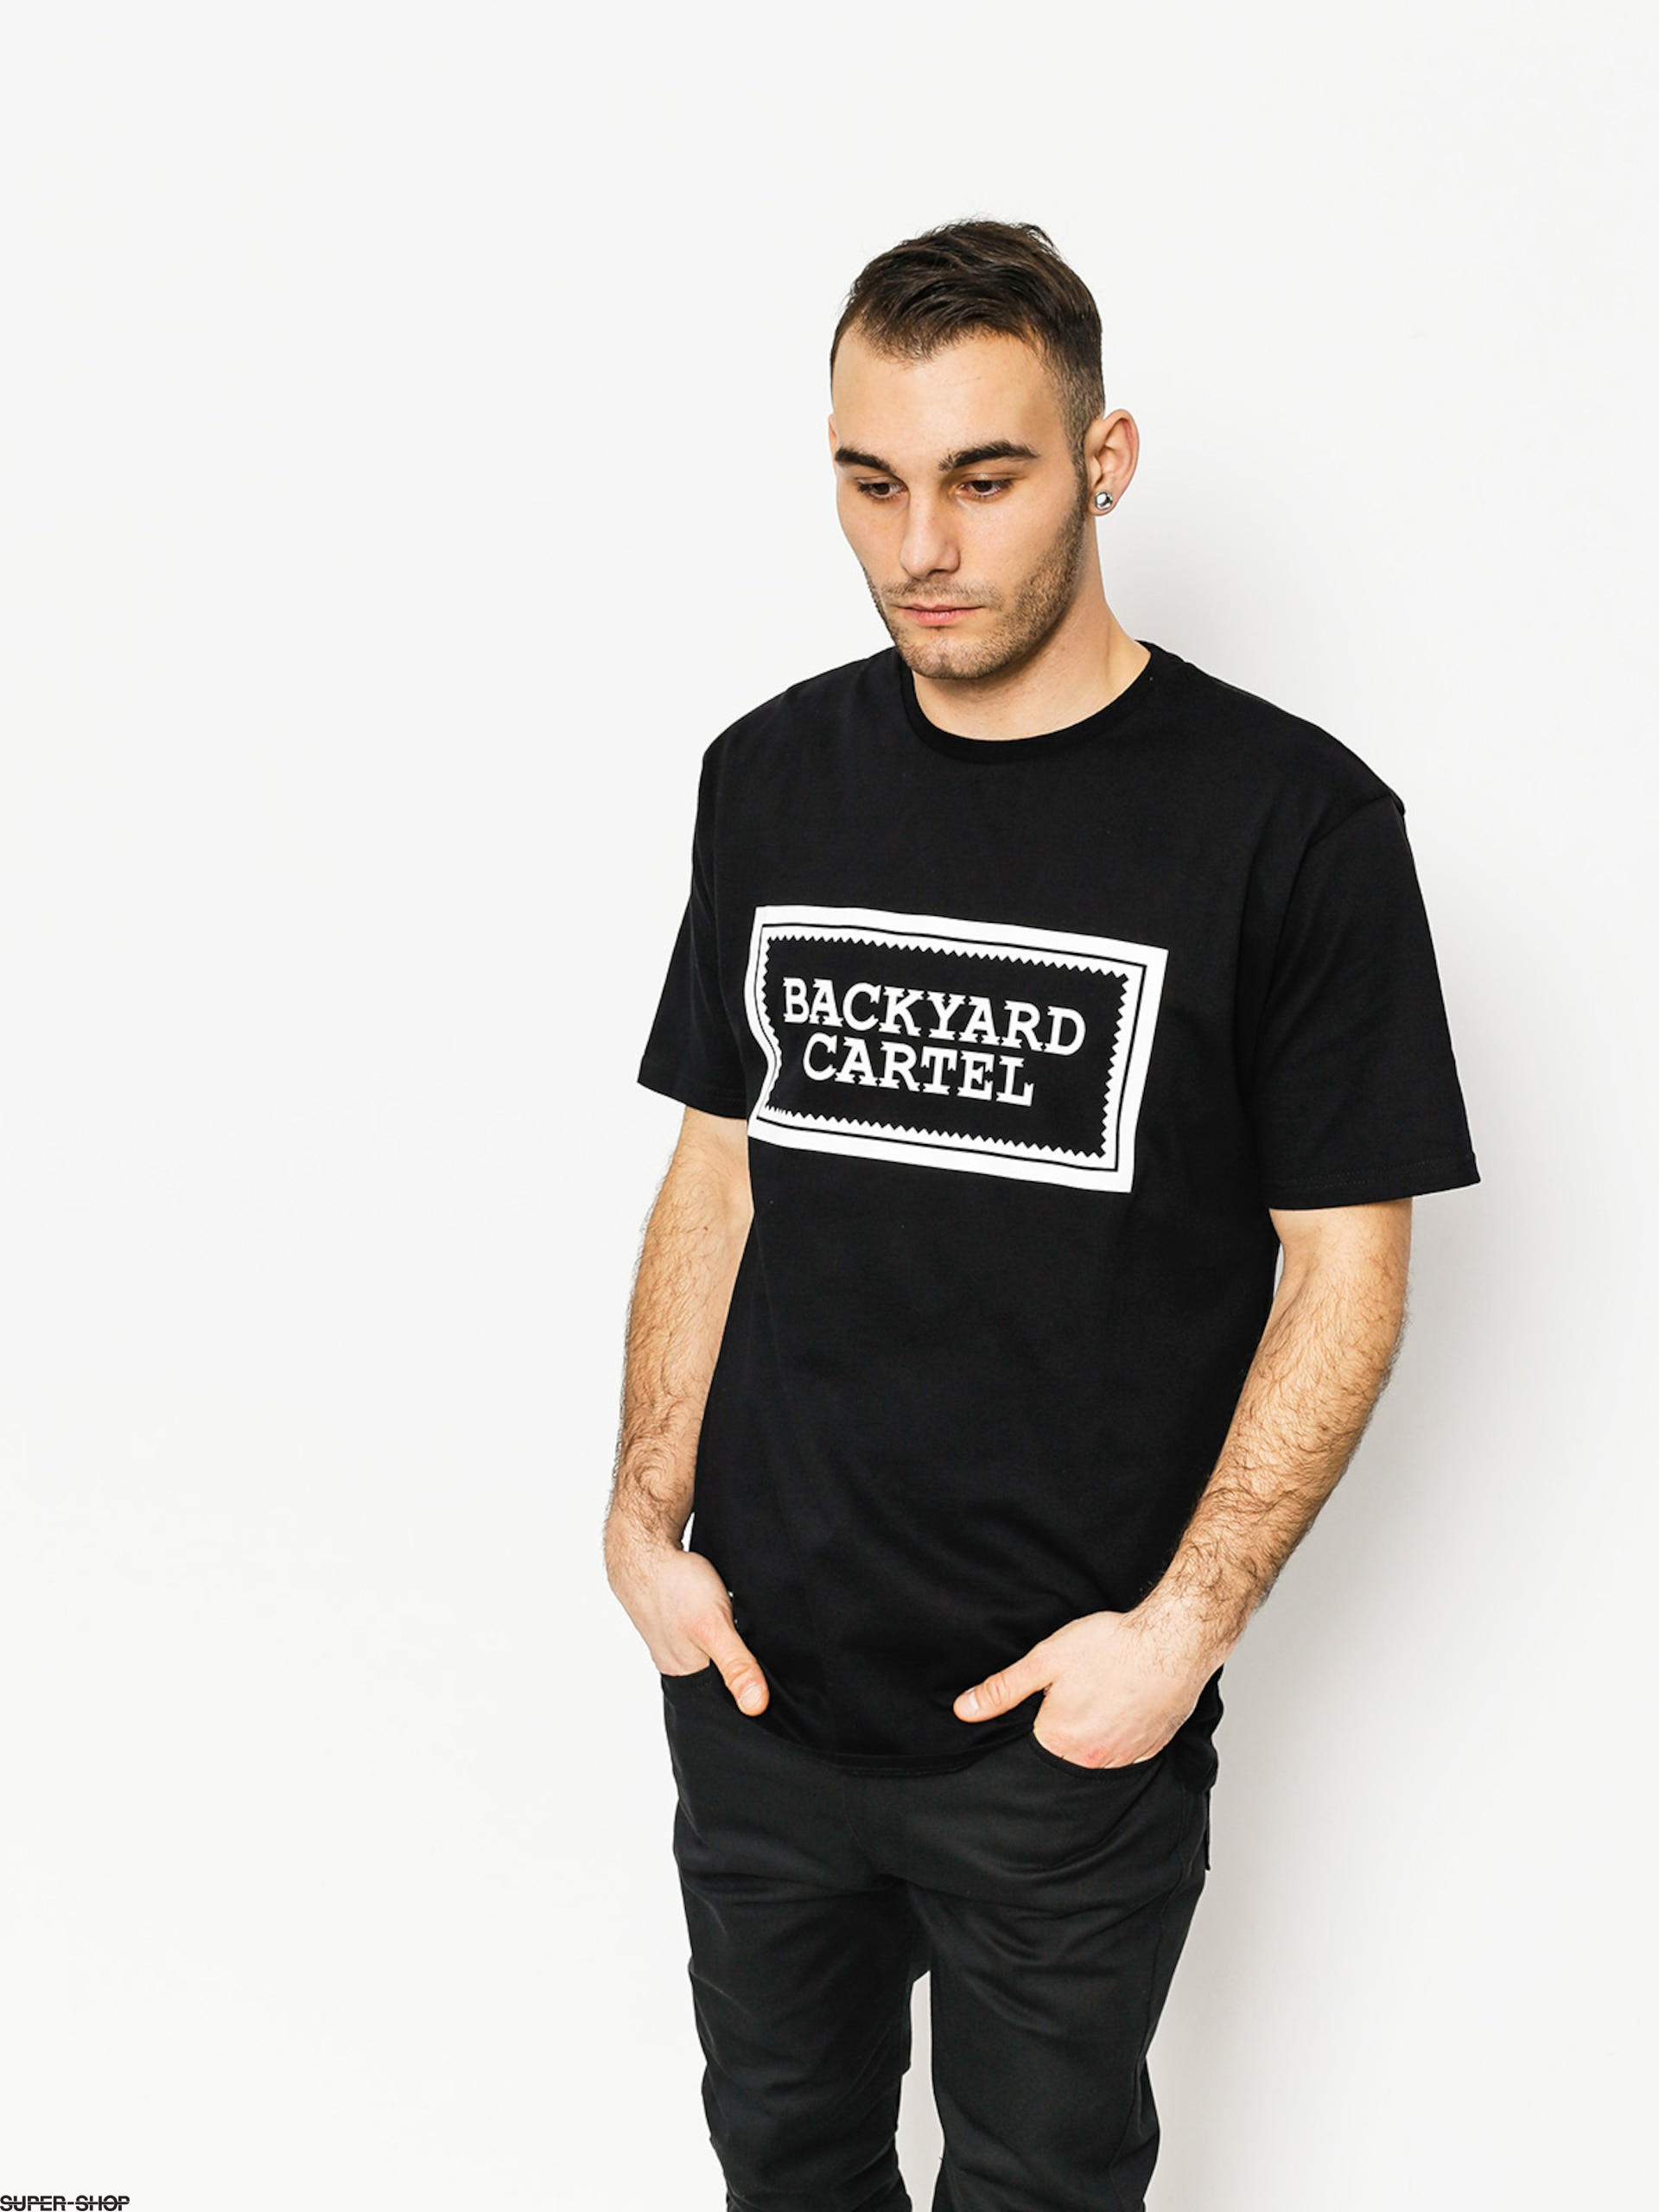 Backyard Cartel T-shirt Label Logo